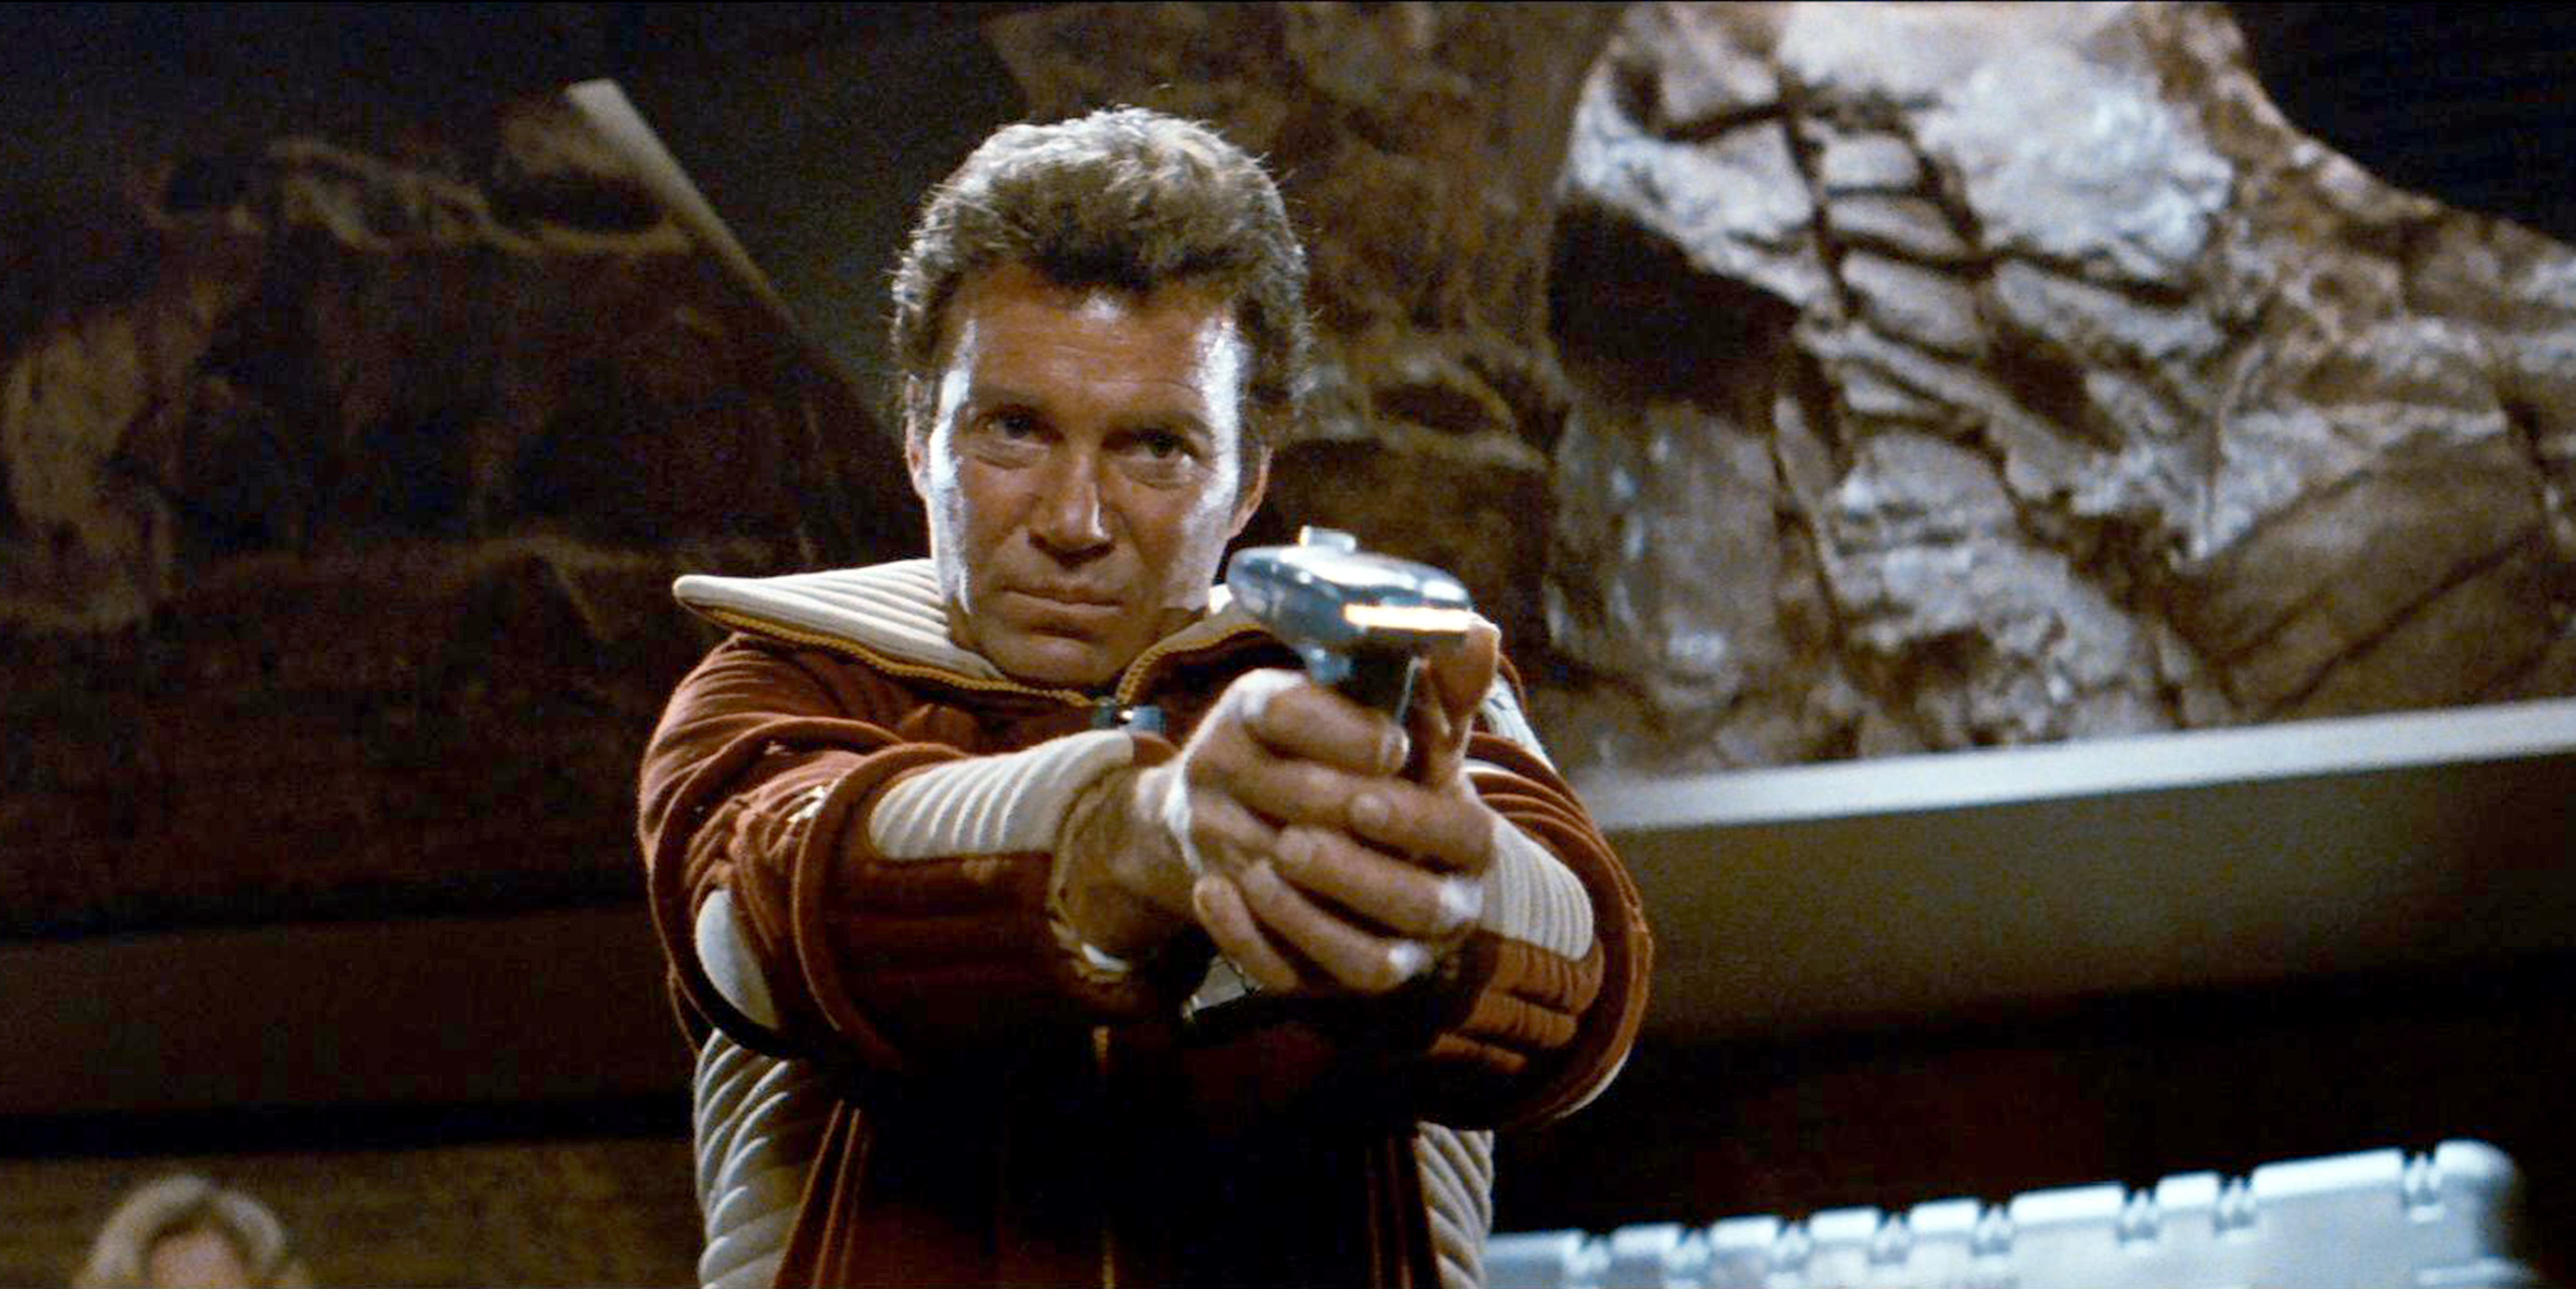 LOS ANGELES - JUNE 4: William Shatner as Admiral James T. Kirk in the movie,  Star Trek II: The Wrath of Khan.  Release date, June 4, 1982. Image is a screen grab. (Photo by CBS via Getty Images)